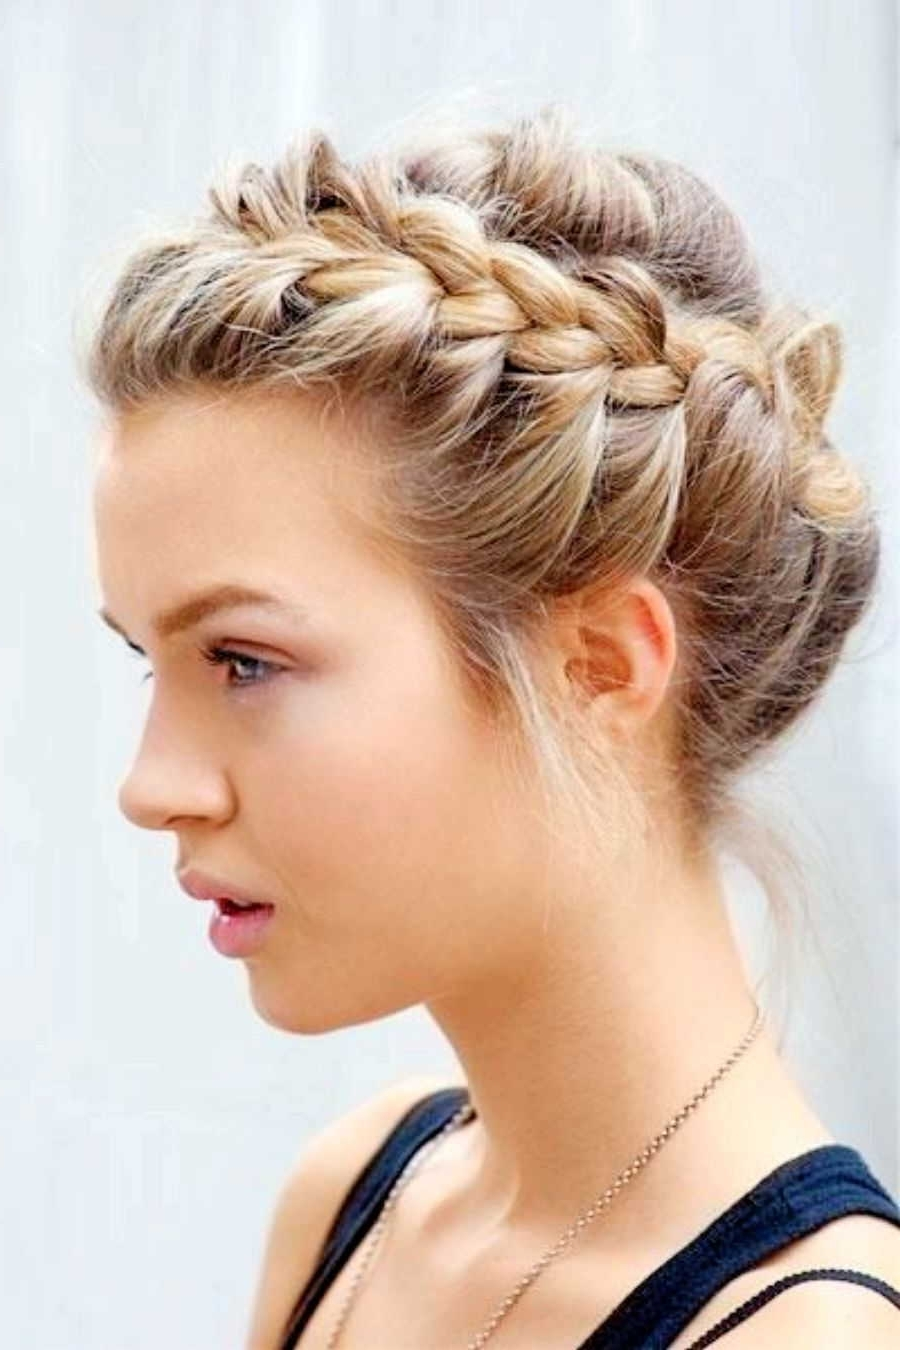 Hairstyles Updo Braid Updo For Short Hair Braids For Short Hair Intended For Updos For Fine Short Hair (View 12 of 15)